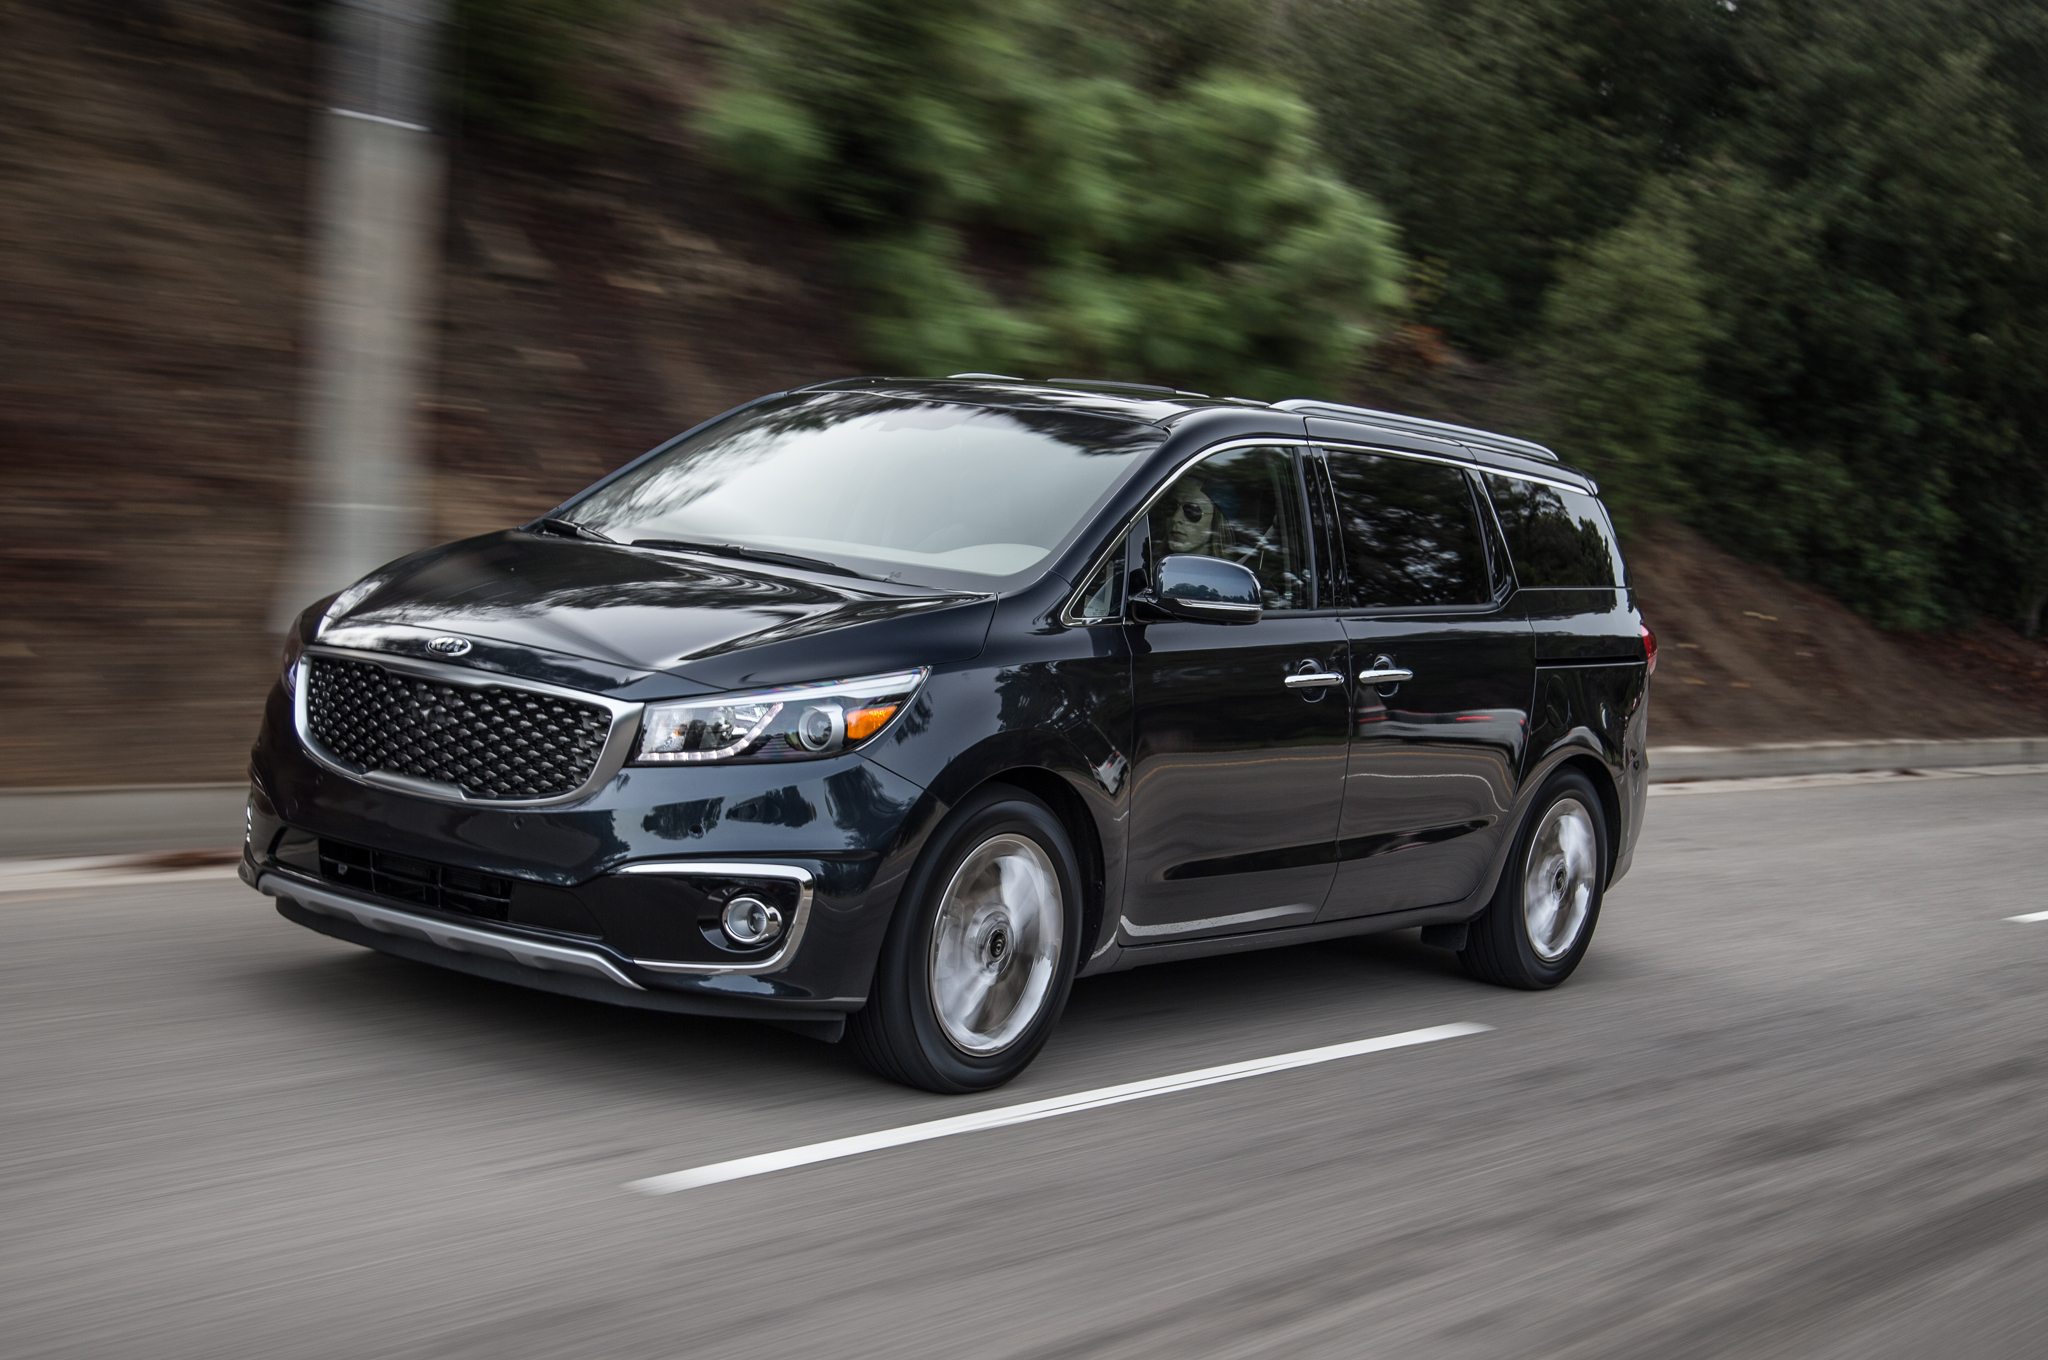 Article Power To The People Wards Auto Ranks Its 10 Best 2015 Kia Sorento Wiring Harness Sedona Motor Trend Perspective